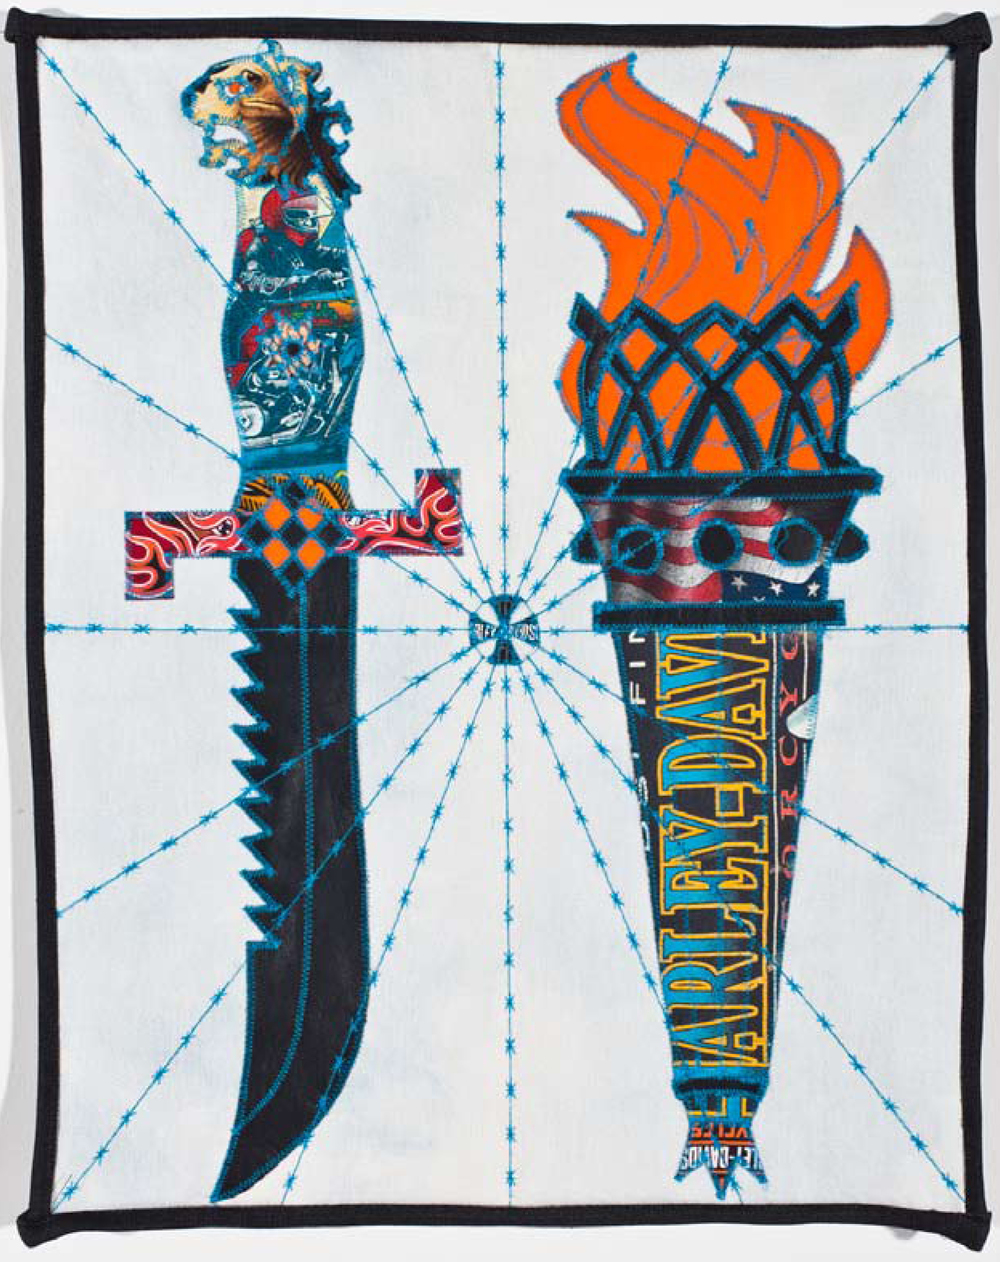 "Ben Venom,  I Carry the Flame , 2013,Harley Davidson t-shirts, leather, and denim, hand-made quilt, 15"" x 19."" Collection of Matt Gonzalez."